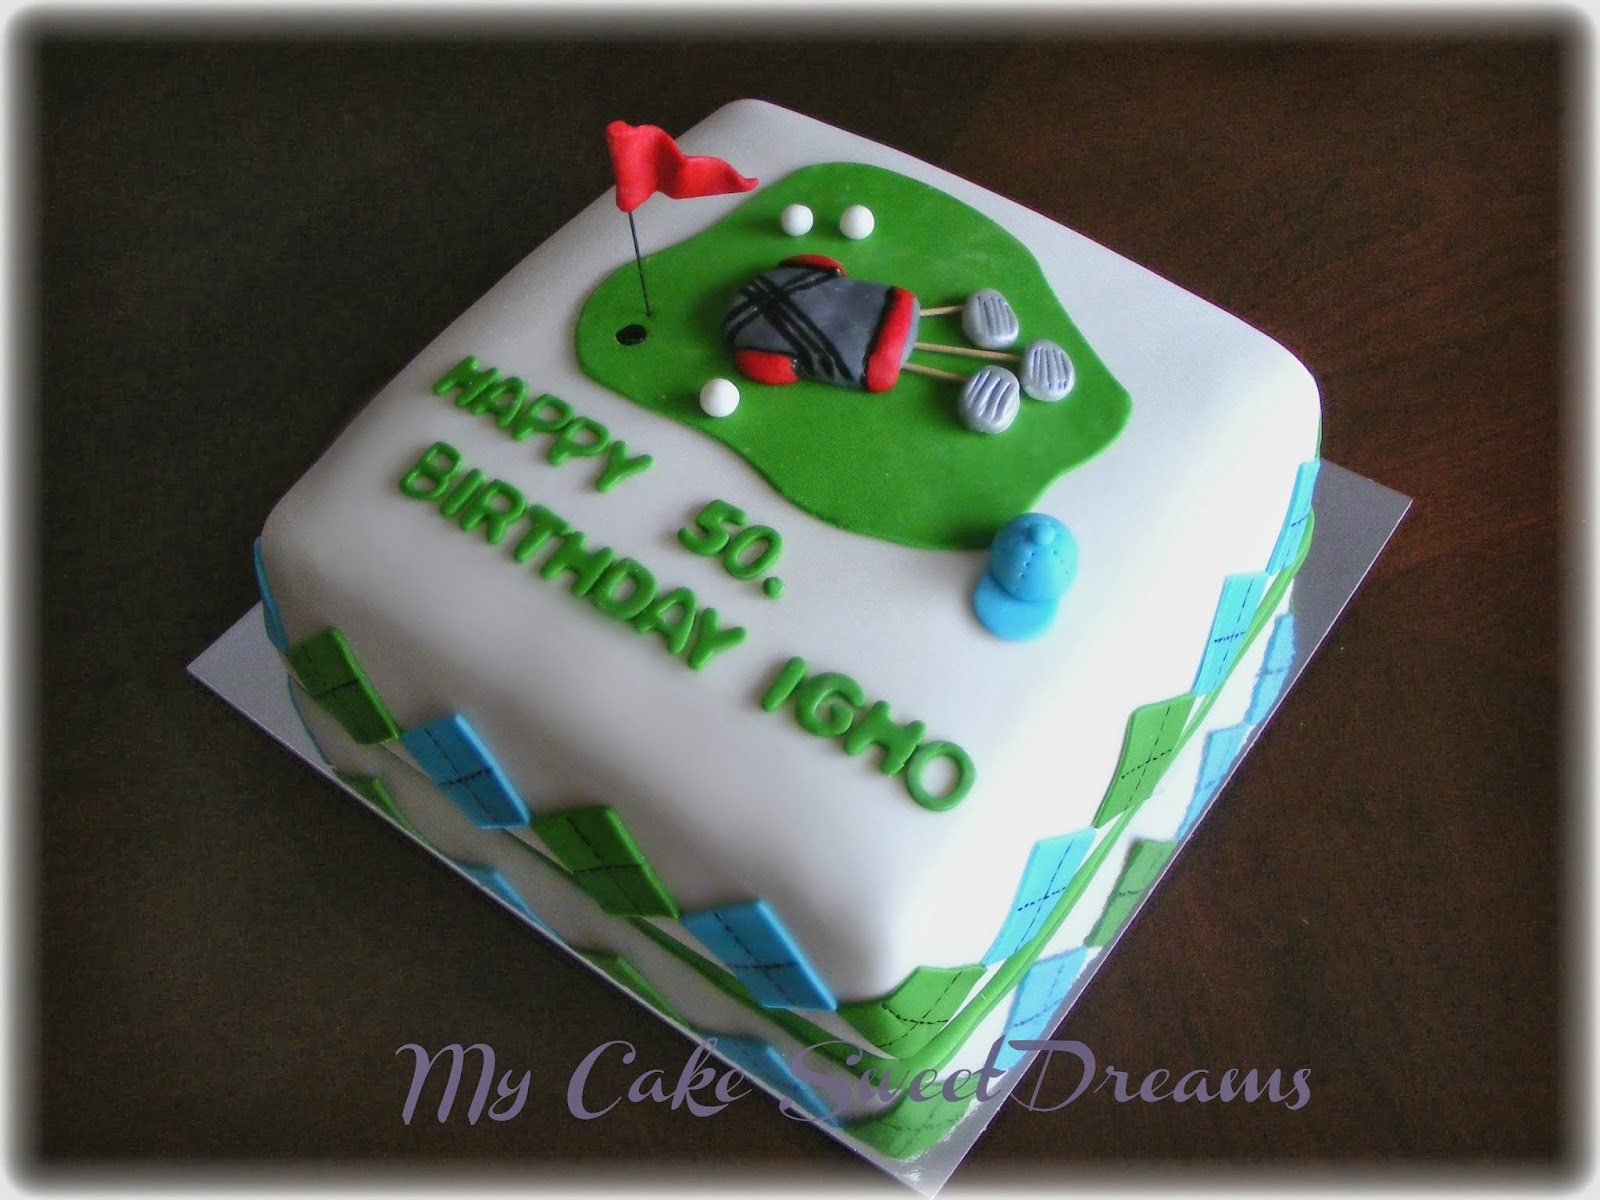 Mycakesweetdreams Golf Themed Cake